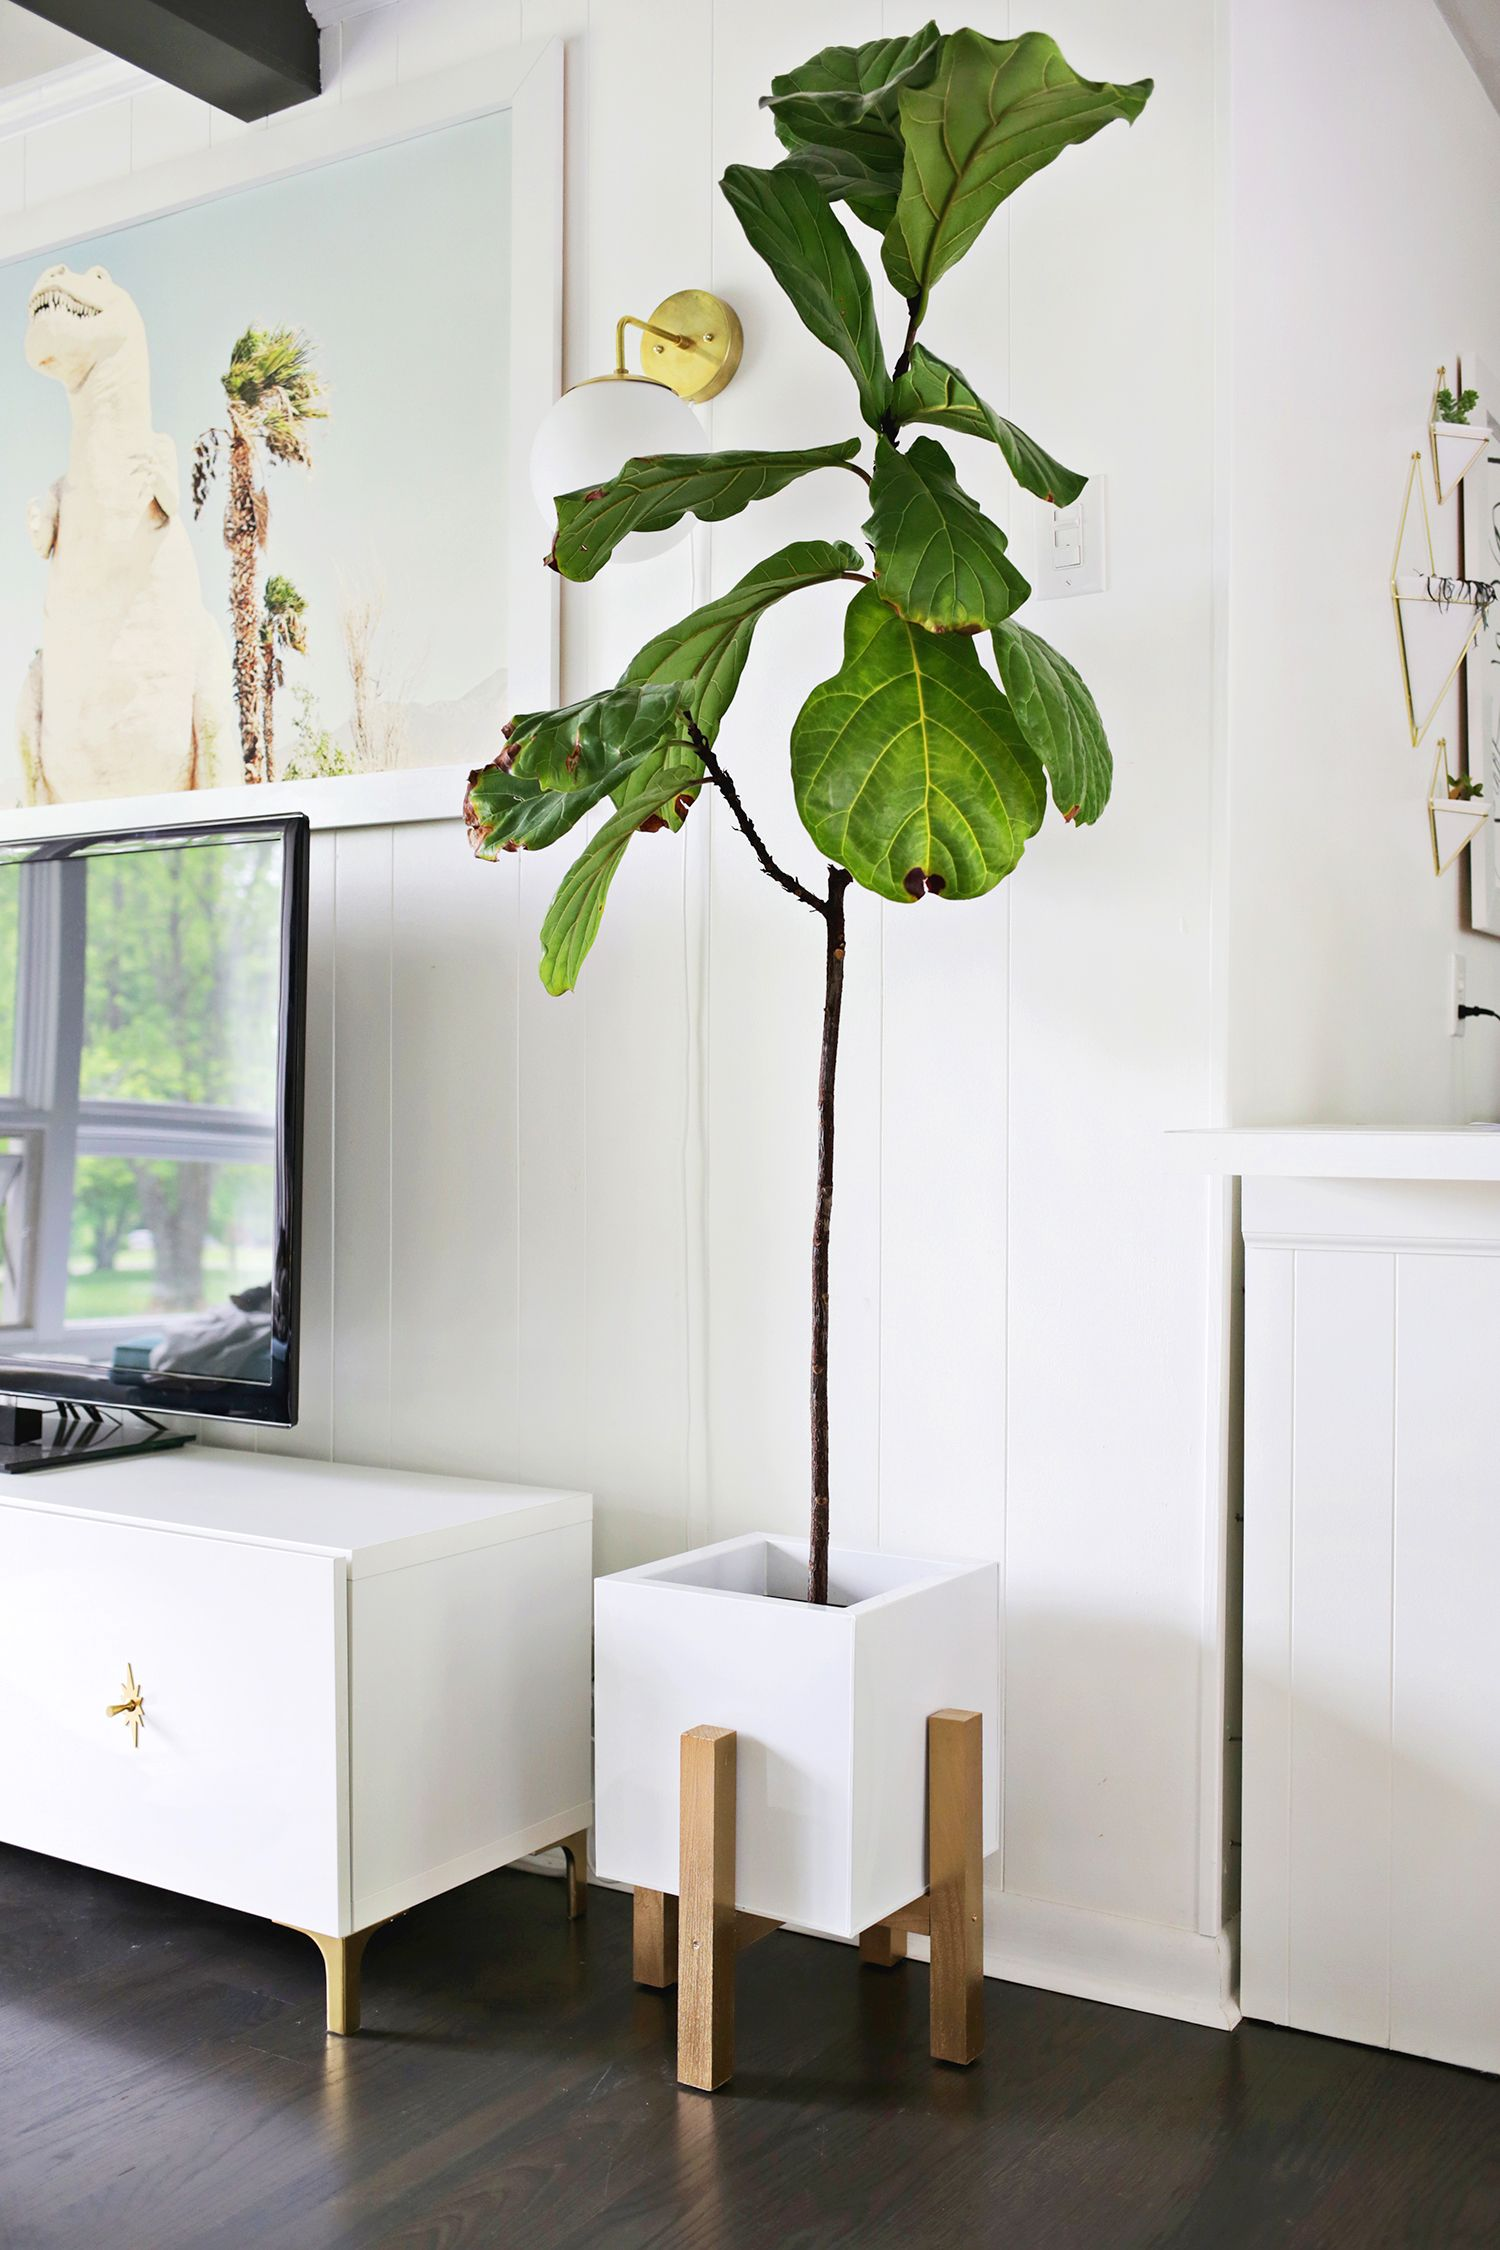 Exceptionnel Need Some Ideas To Display Your Plants Indoor And Outdoor? Here You Go: We  Have Listed A Lot Of Easily Made Plant Stand Ideas To Put Some Greenery  Accent To ...